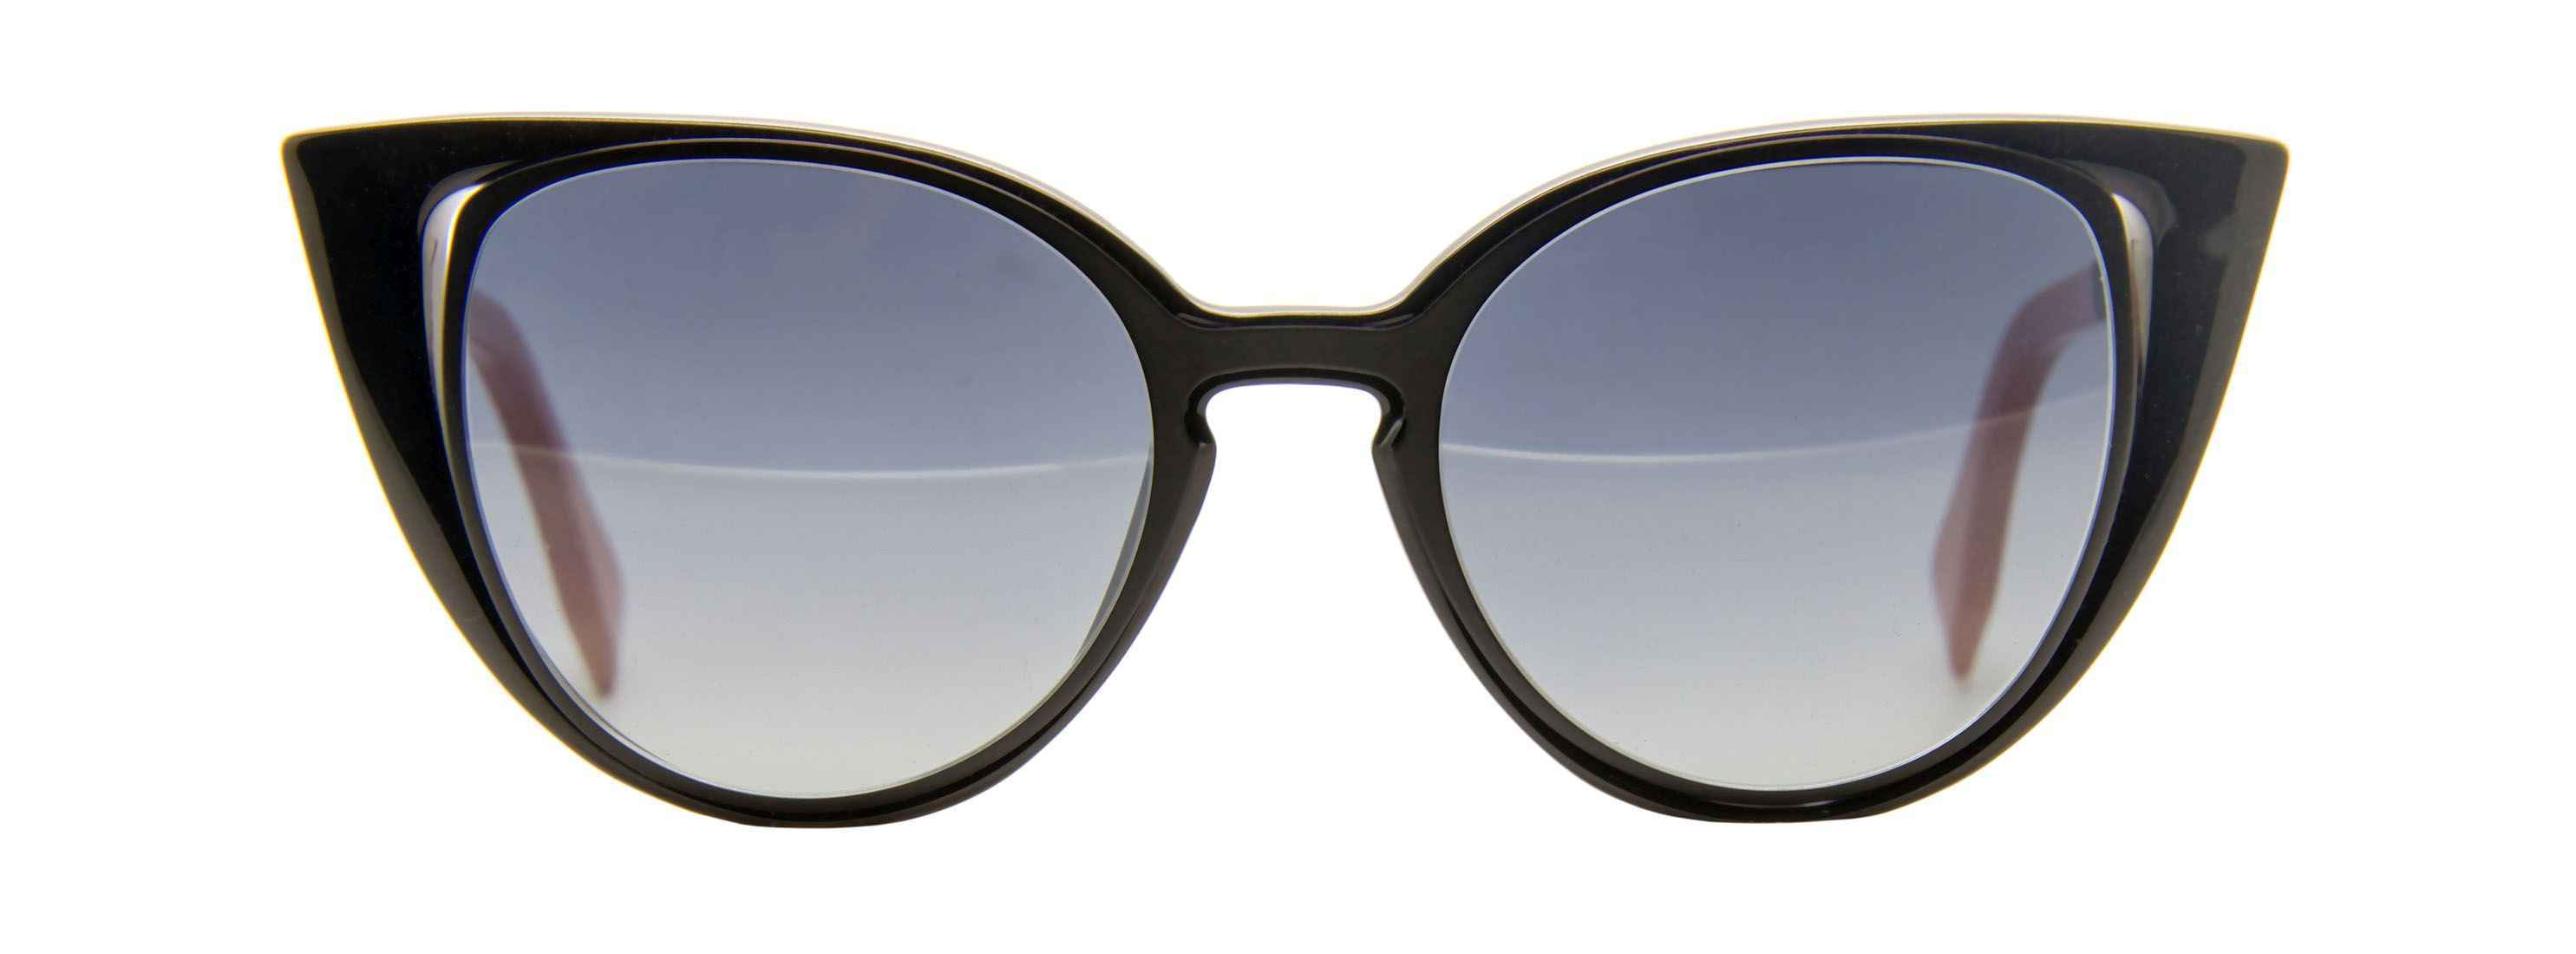 Fendi sunglasses 0136 Ny1hd 01 2970x1100